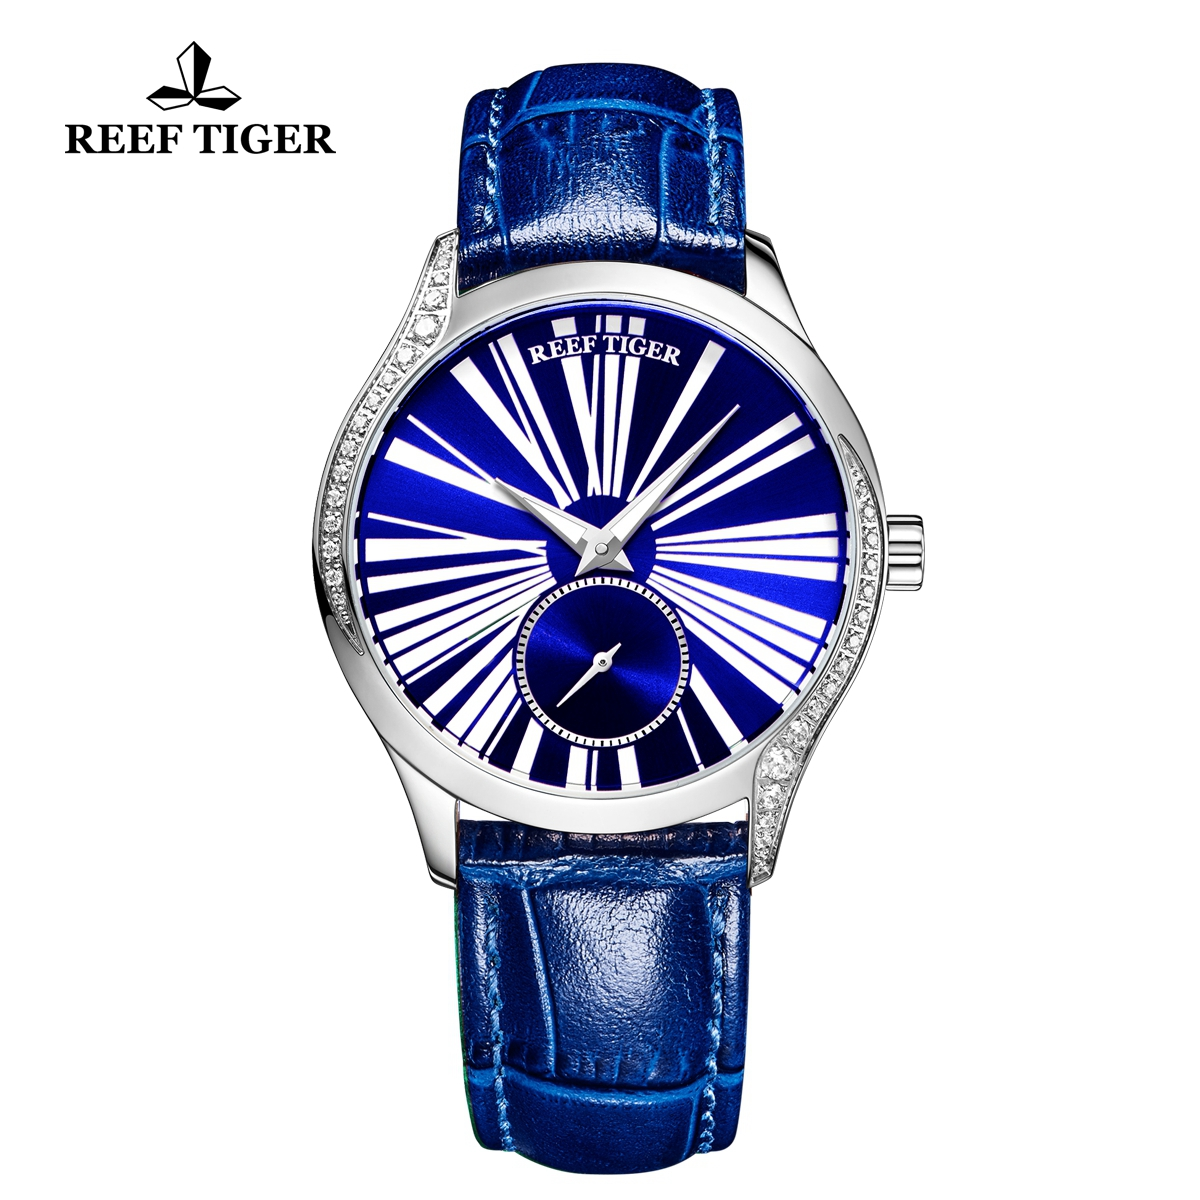 Reef Tiger Love Highness Casual Diamonds Bezel Watch Steel Case Leather Strap RGA1561-YLL